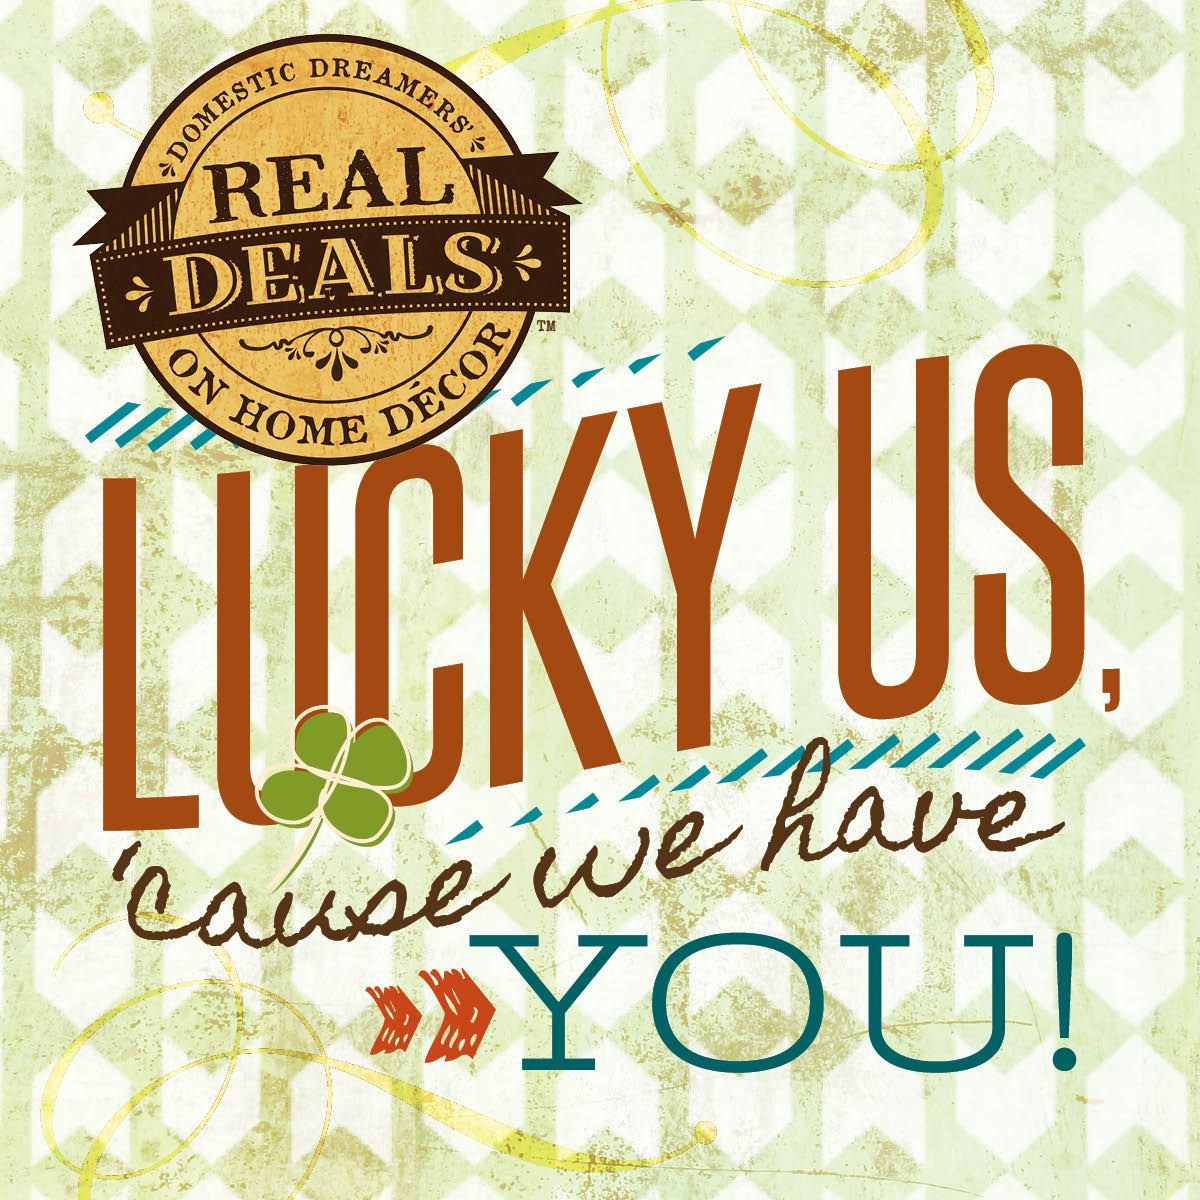 Happy St. Patrick's Day! We're So Lucky To Have Great